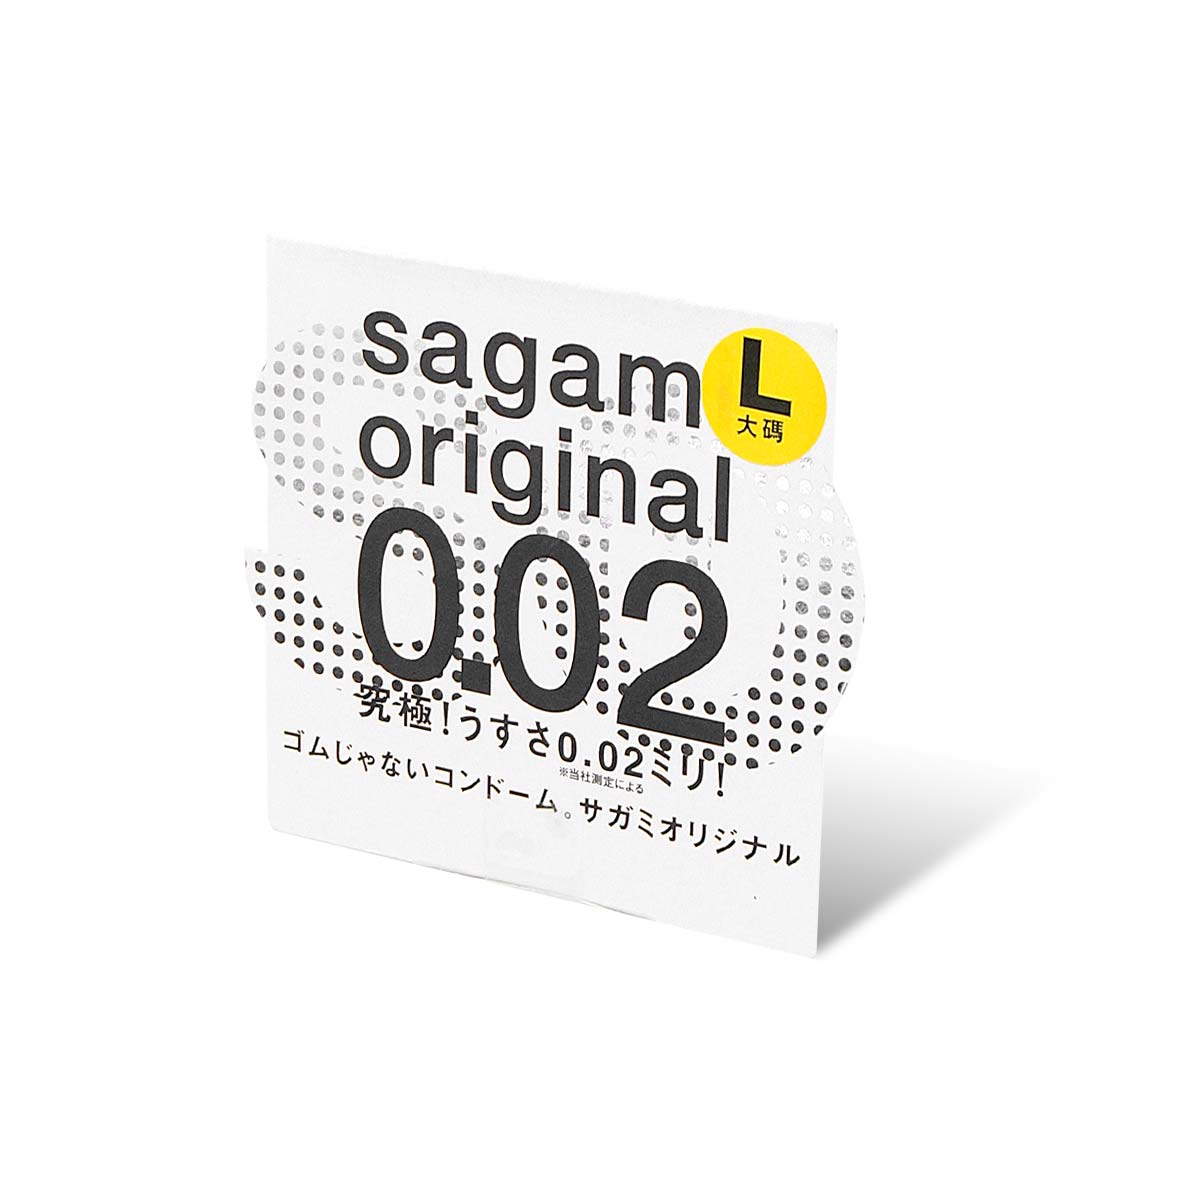 Sagami Original 0.02 L-size (2nd generation) 58mm 1's Pack PU Condom